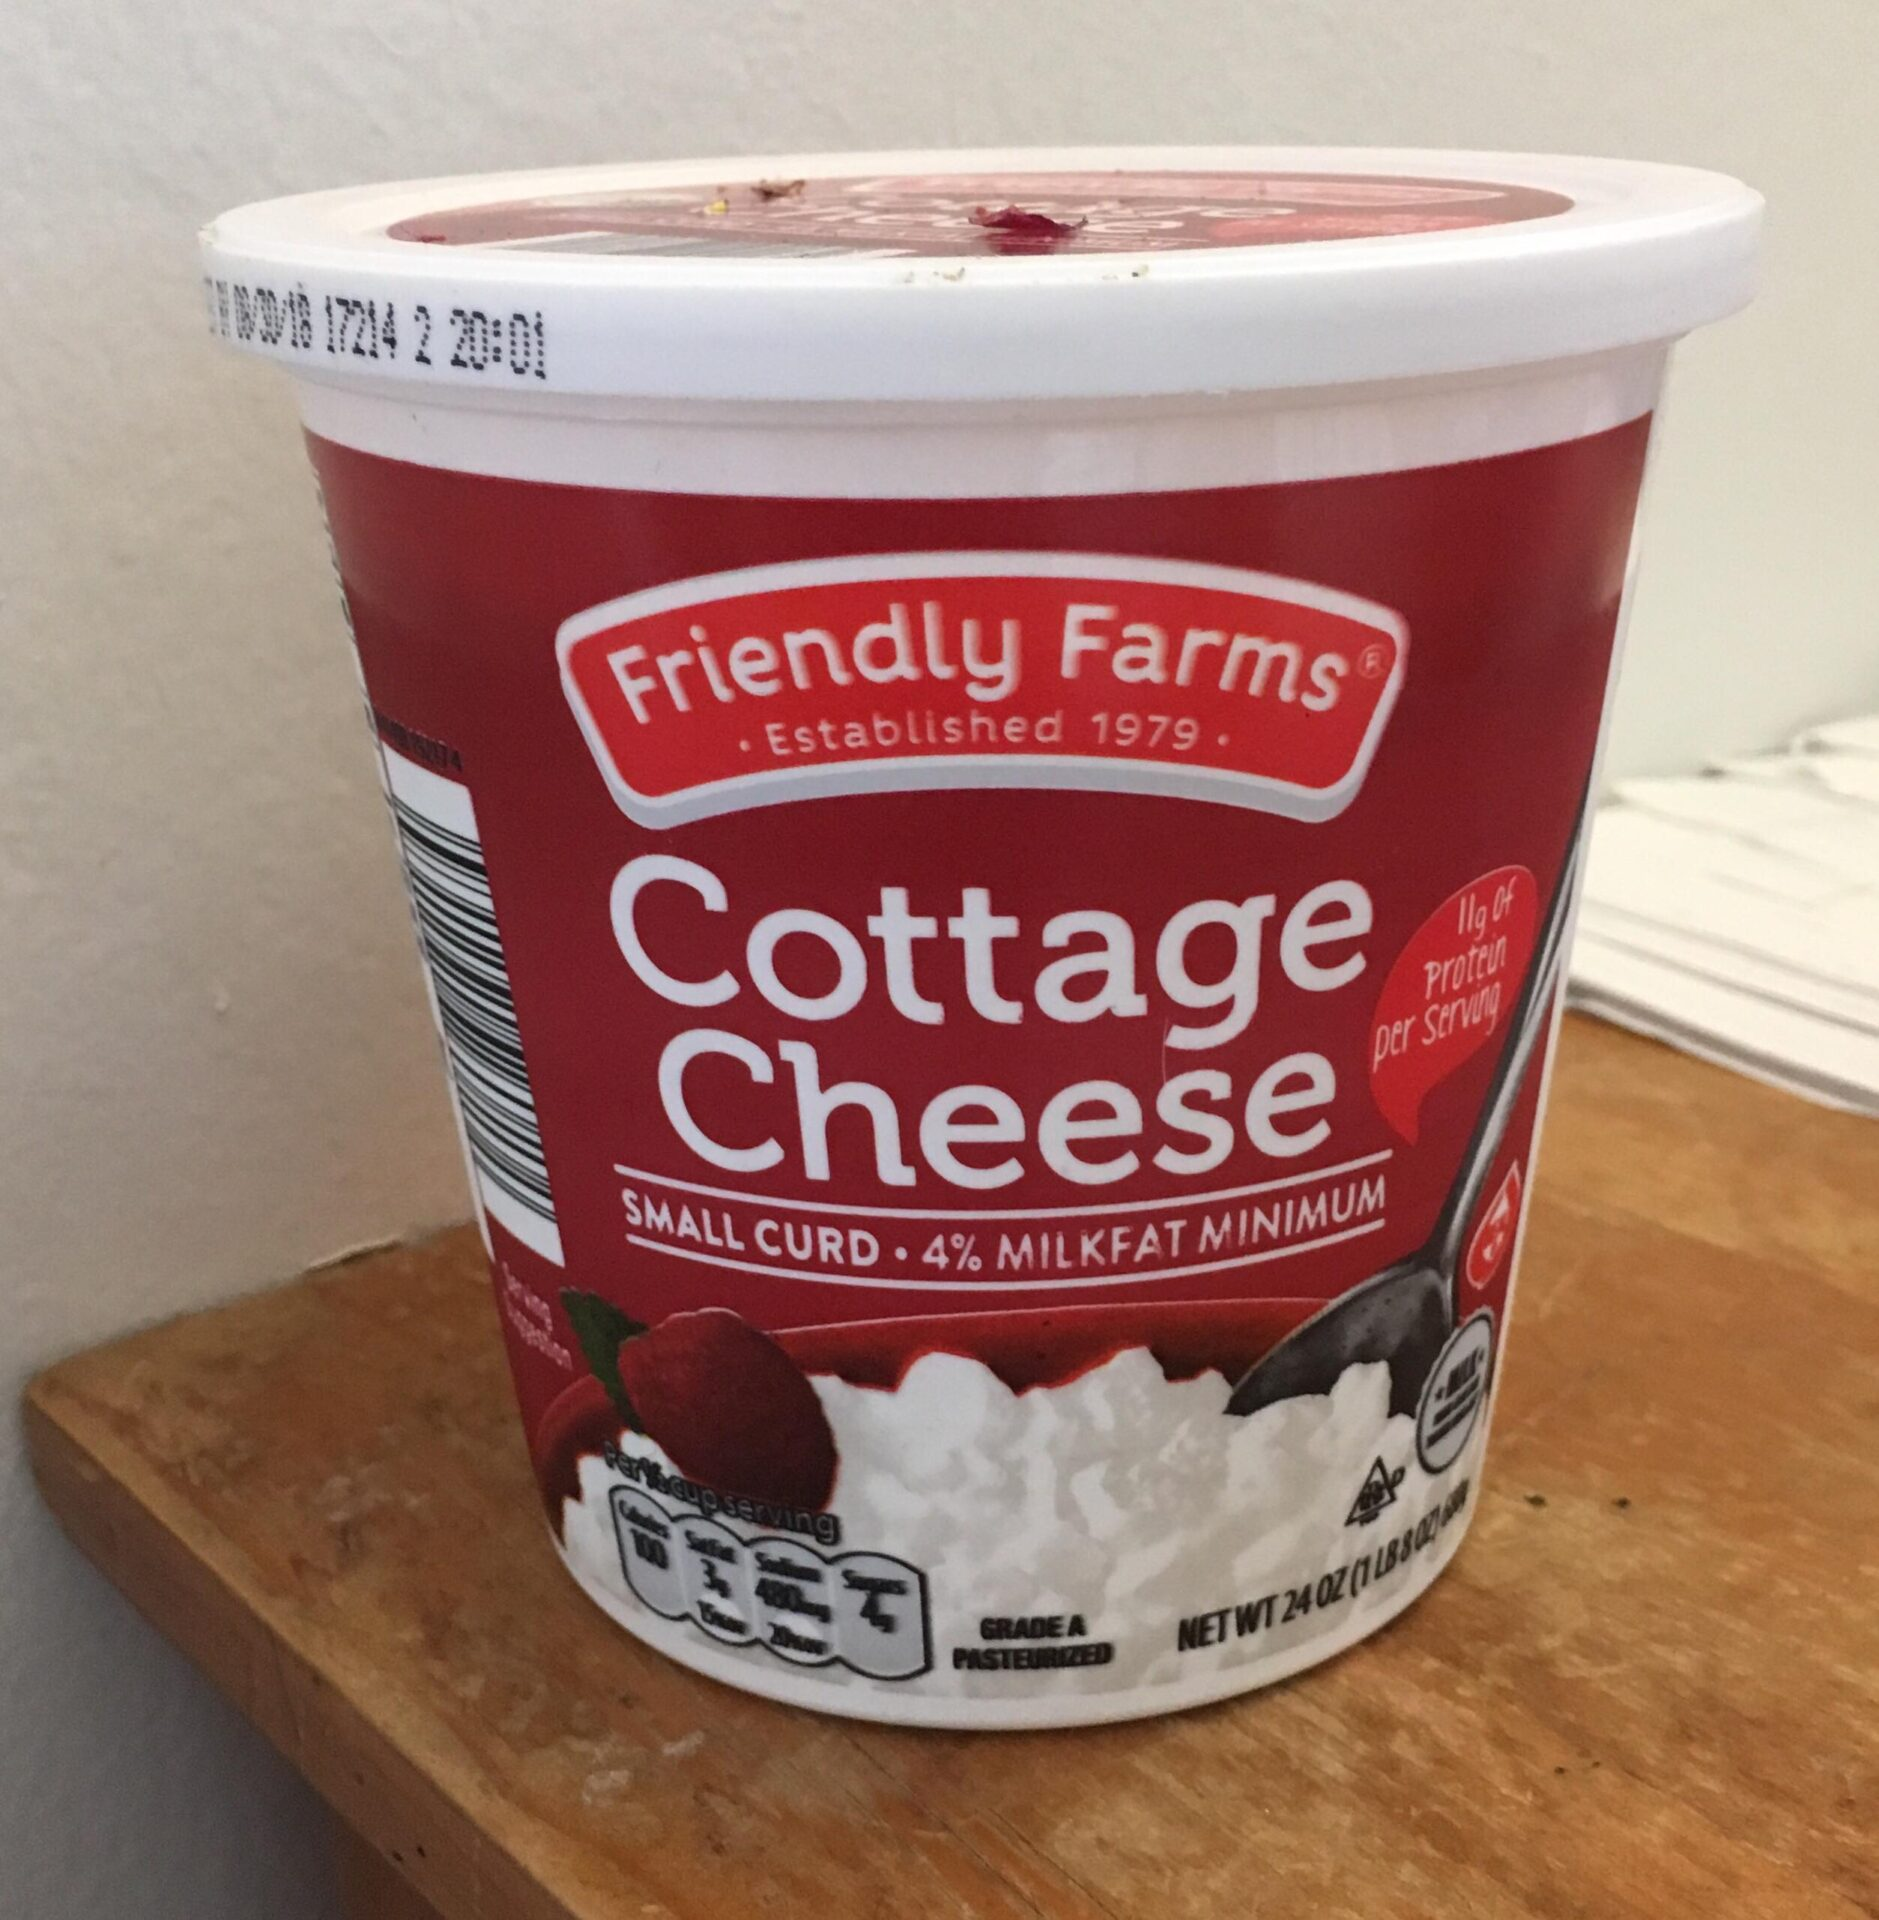 Friendly Farms Cottage Cheese | ALDI REVIEWER